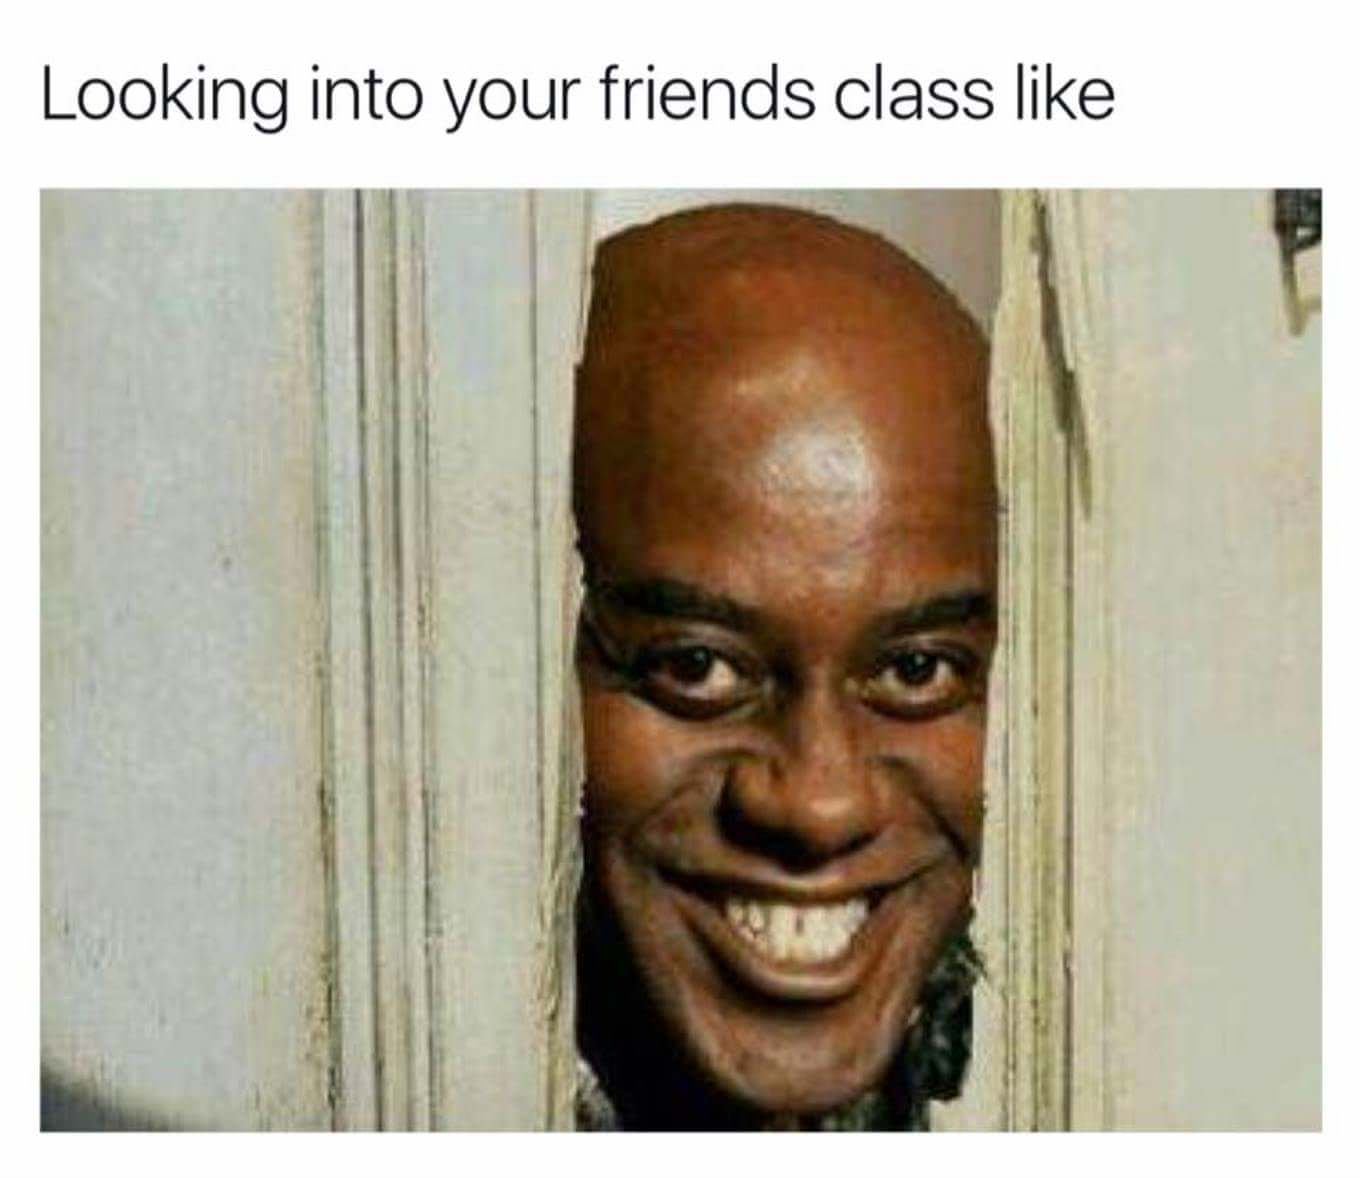 Looking into your friends class like meme